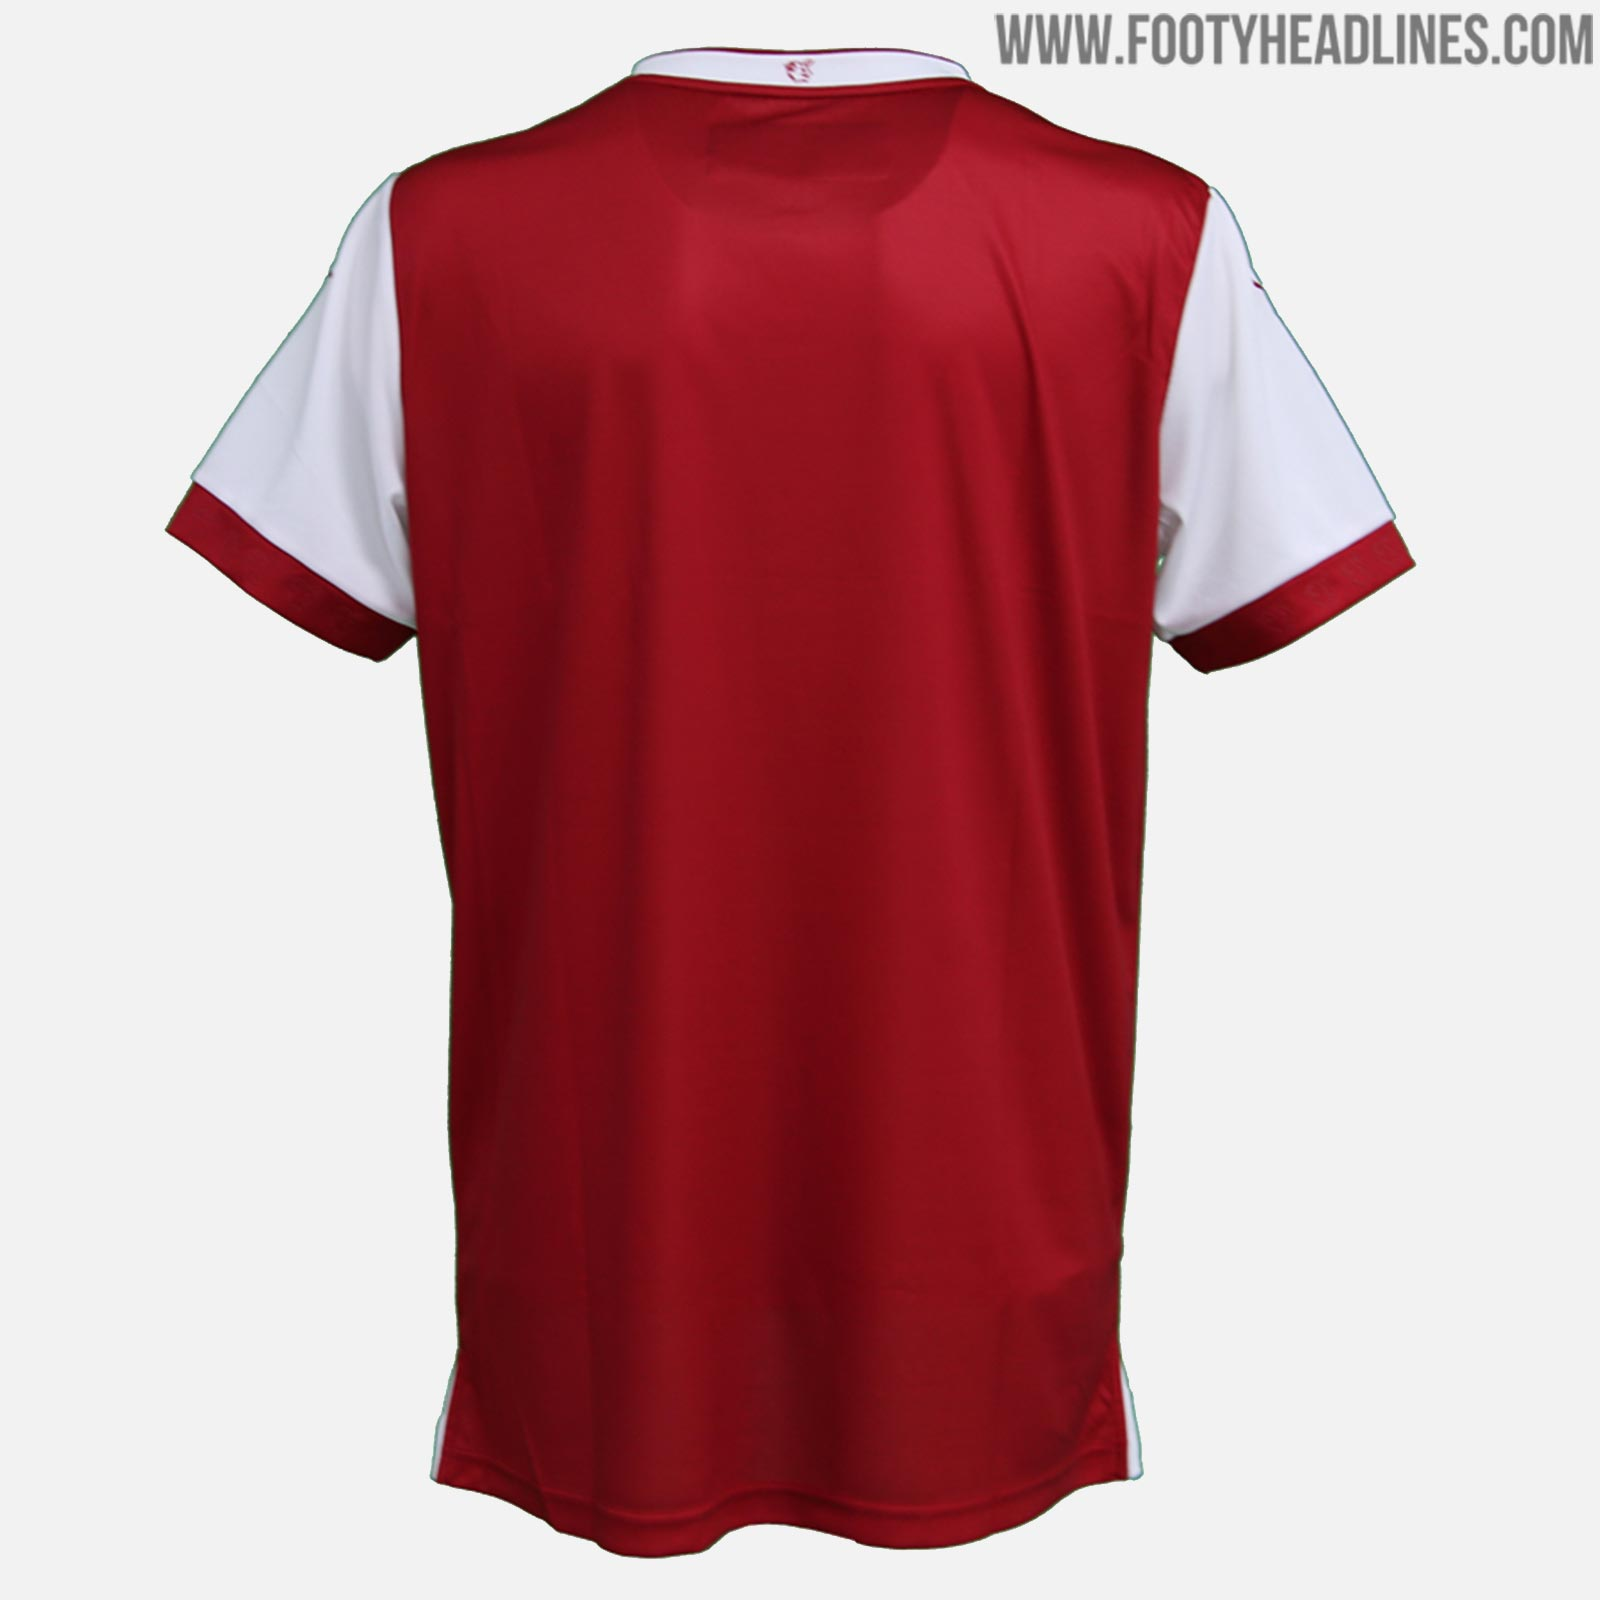 2dc8d9b8910 The Kaiserslautern 2018-19 jersey introduces a classic look in red with a  centered stripe. It features a yellow star with the number 4 above the club  crest ...